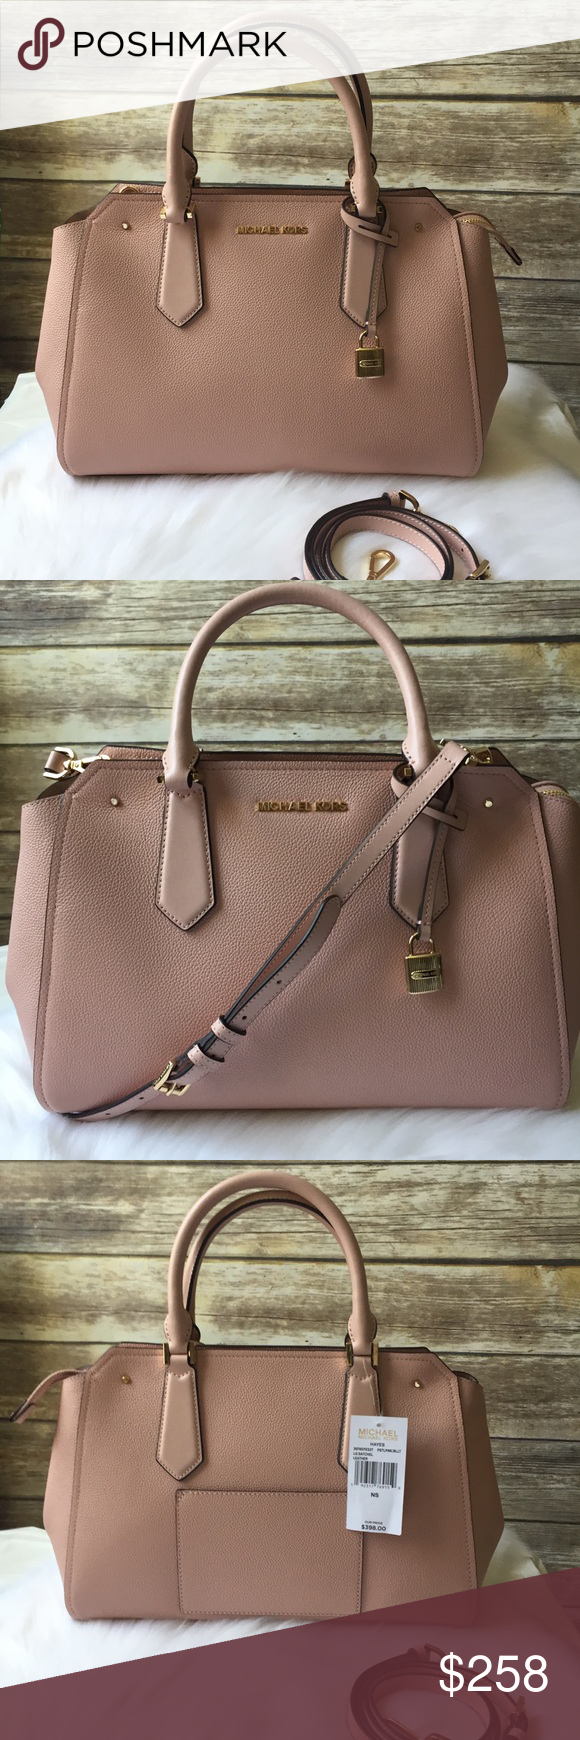 0fe4048a4e01 Michael Kors Hayes pink large satchel leather bag 100% AUTHENTIC ...